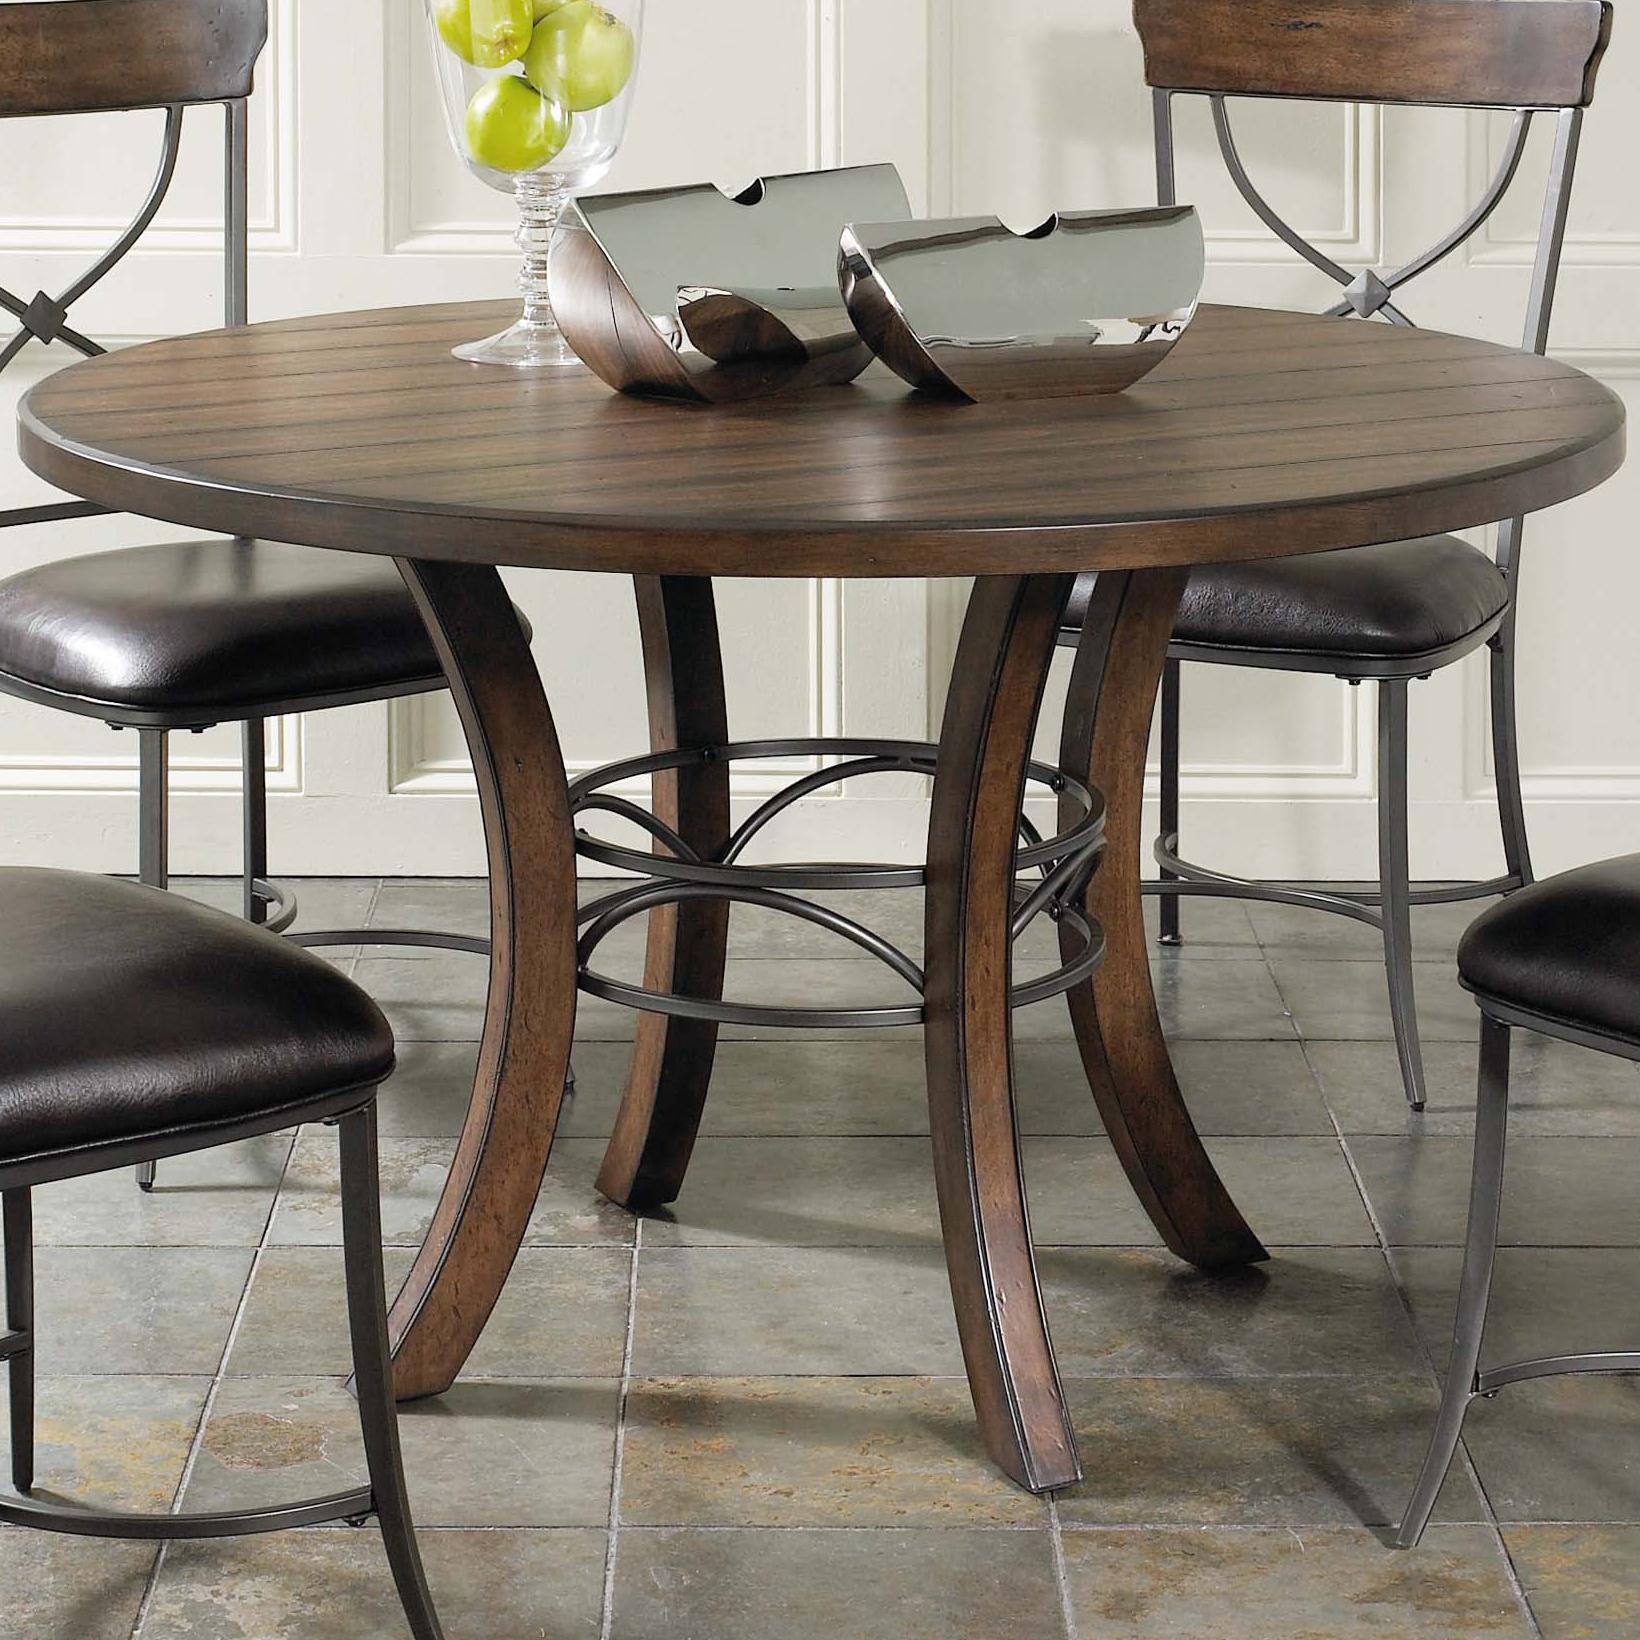 dining table with metal chairs patio and hillsdale cameron round wood acent